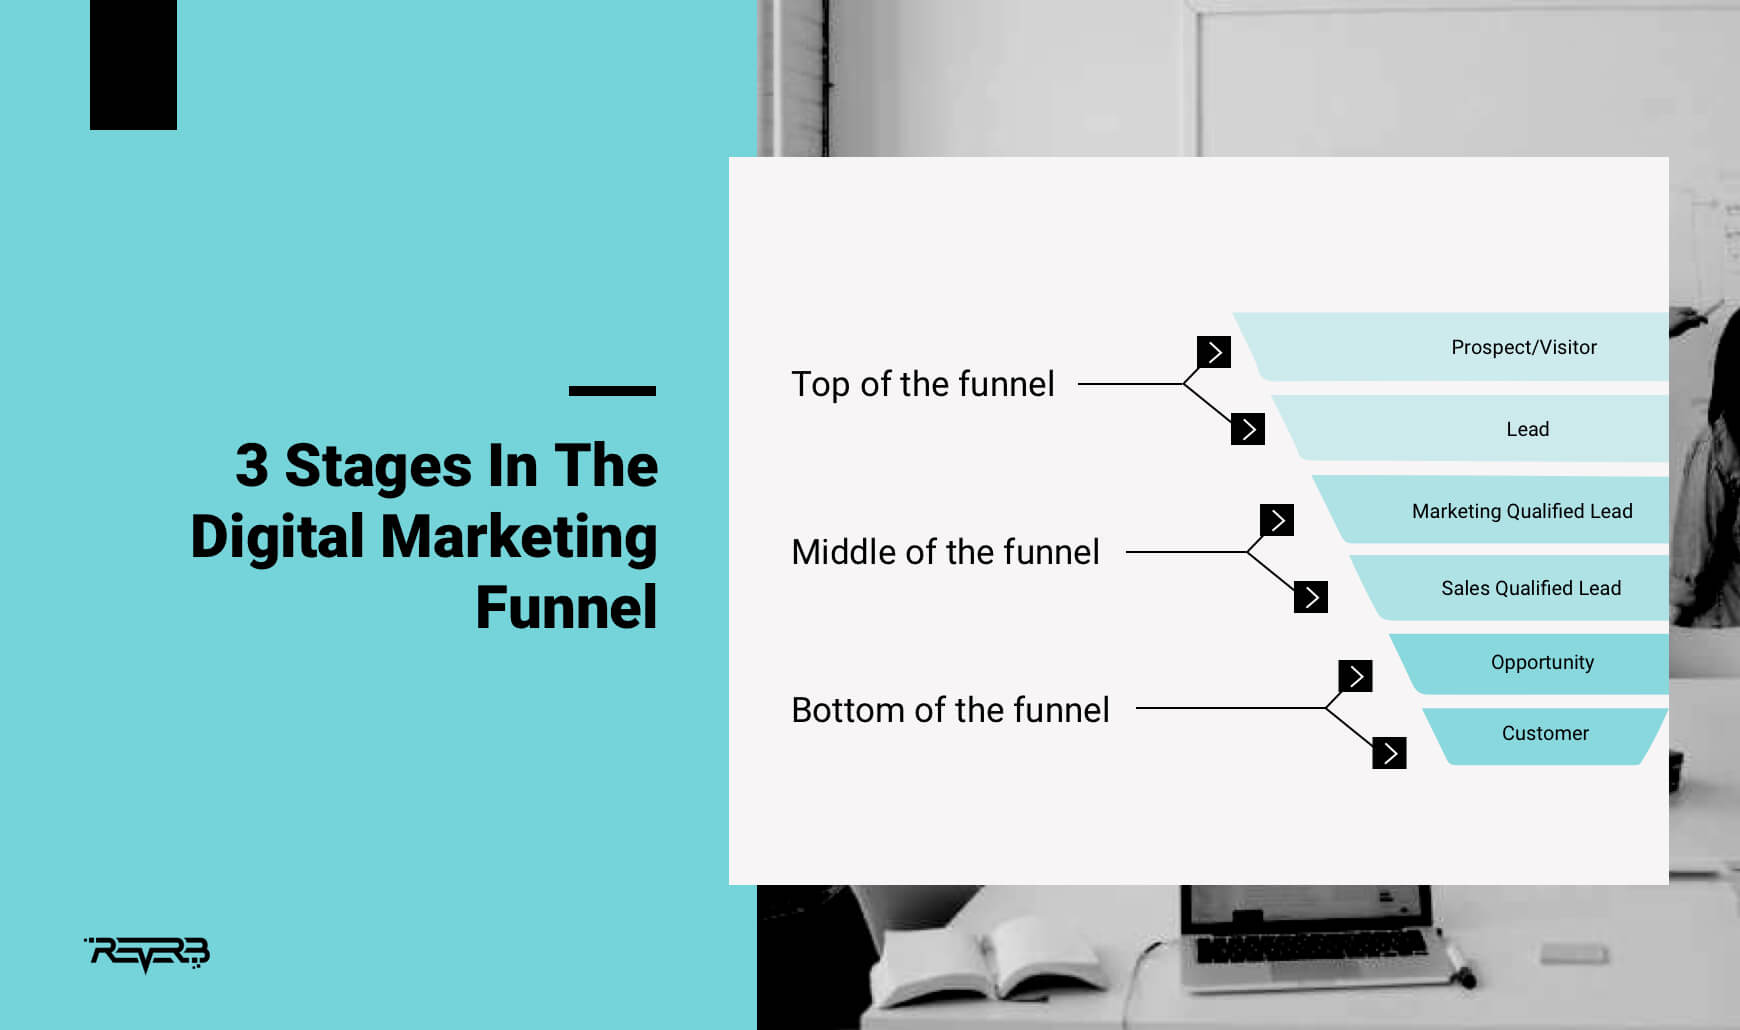 stages in the digital marketing funnel